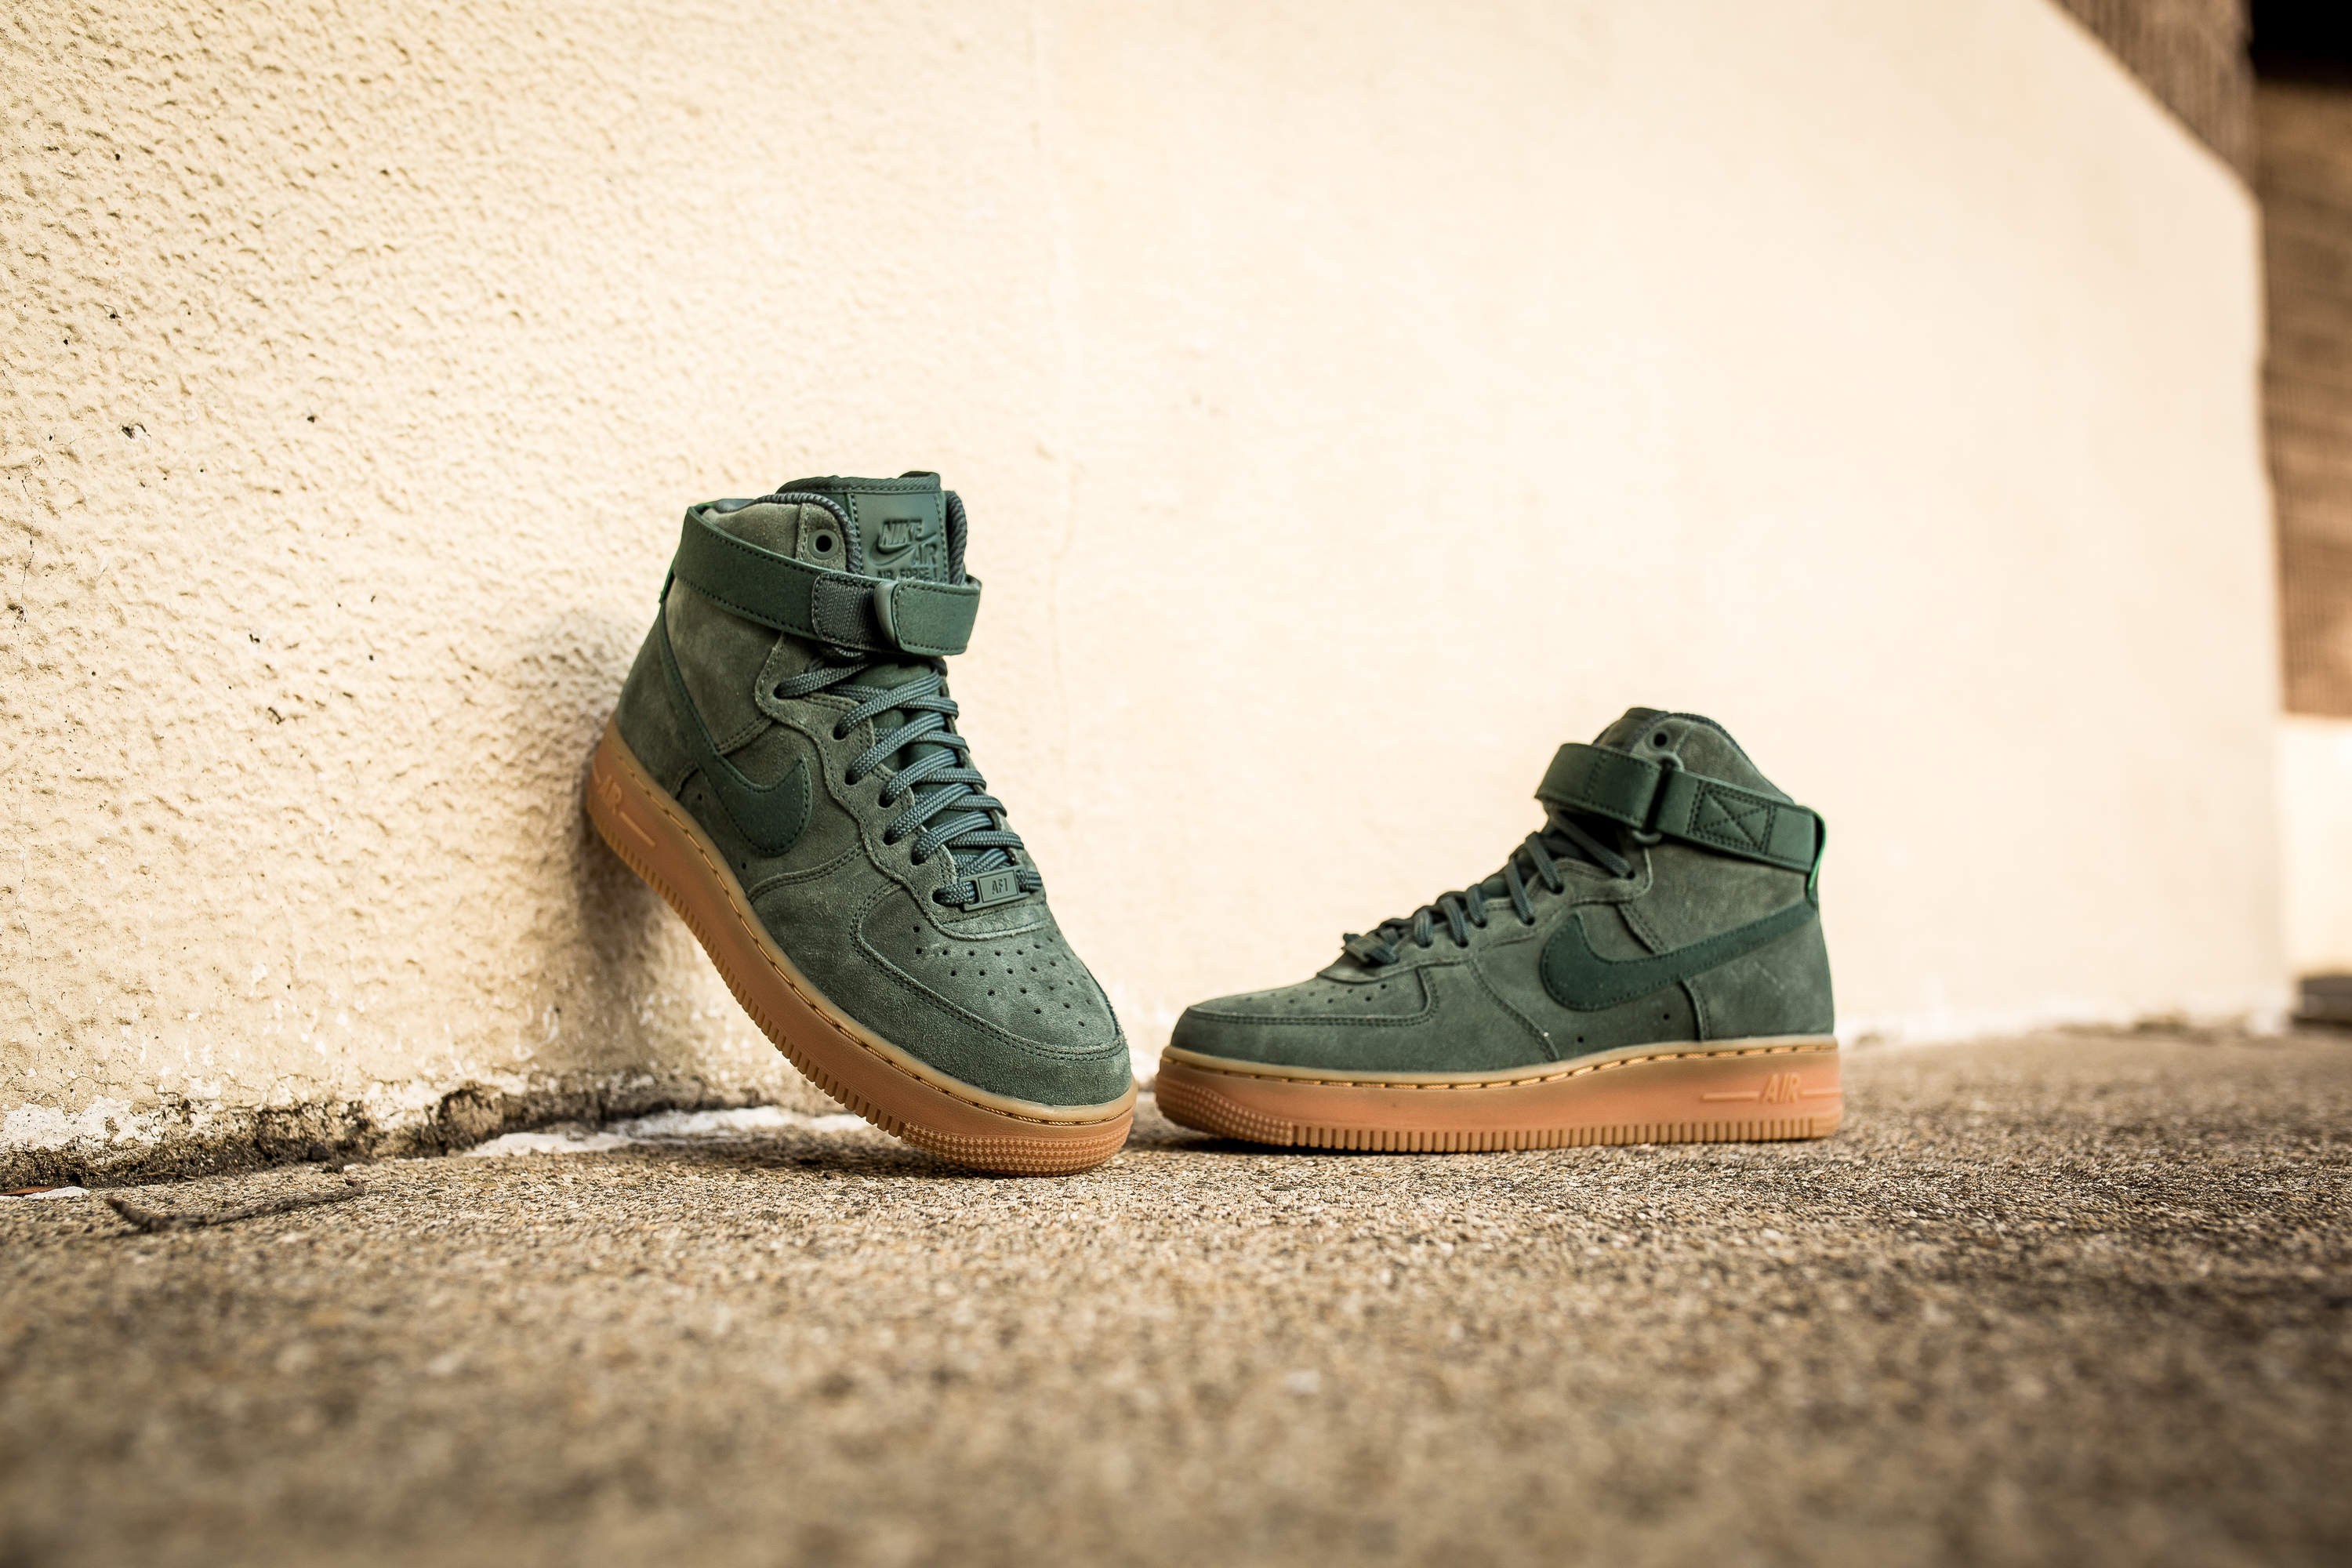 Nike Air Force 1 High '07 LV8 Suede Vintage Green Vintage Green AA1118 300  AA1118 300